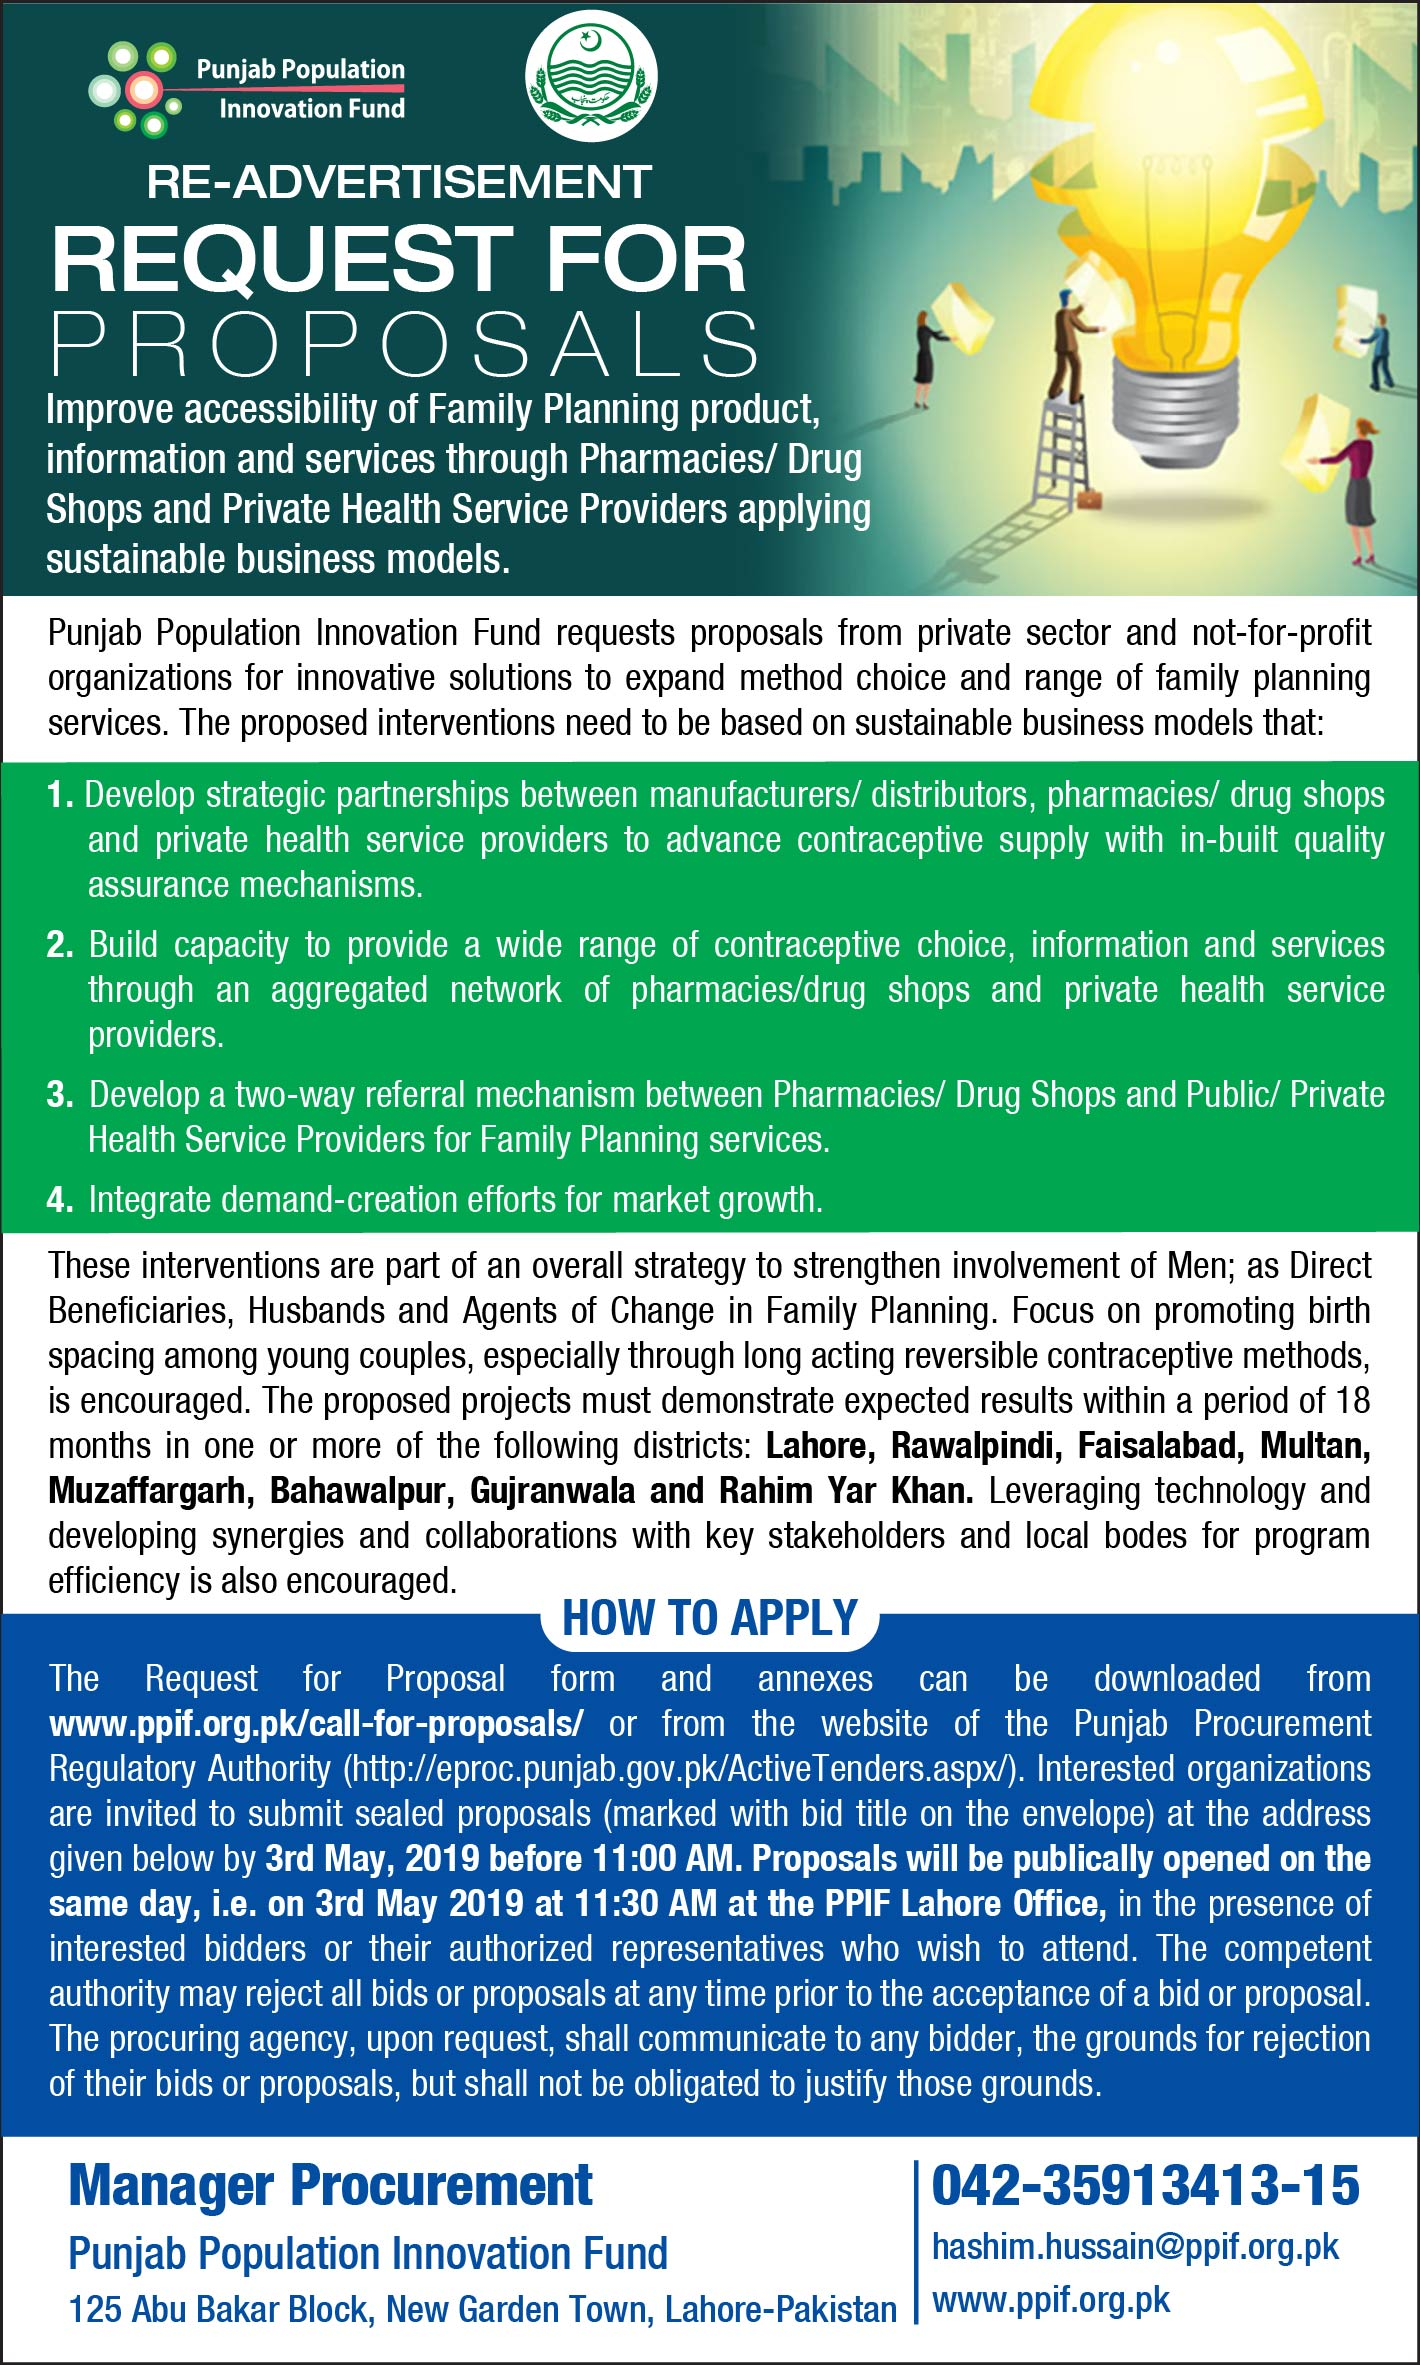 Tenders - Punjab Population Innovation Fund (PPIF)